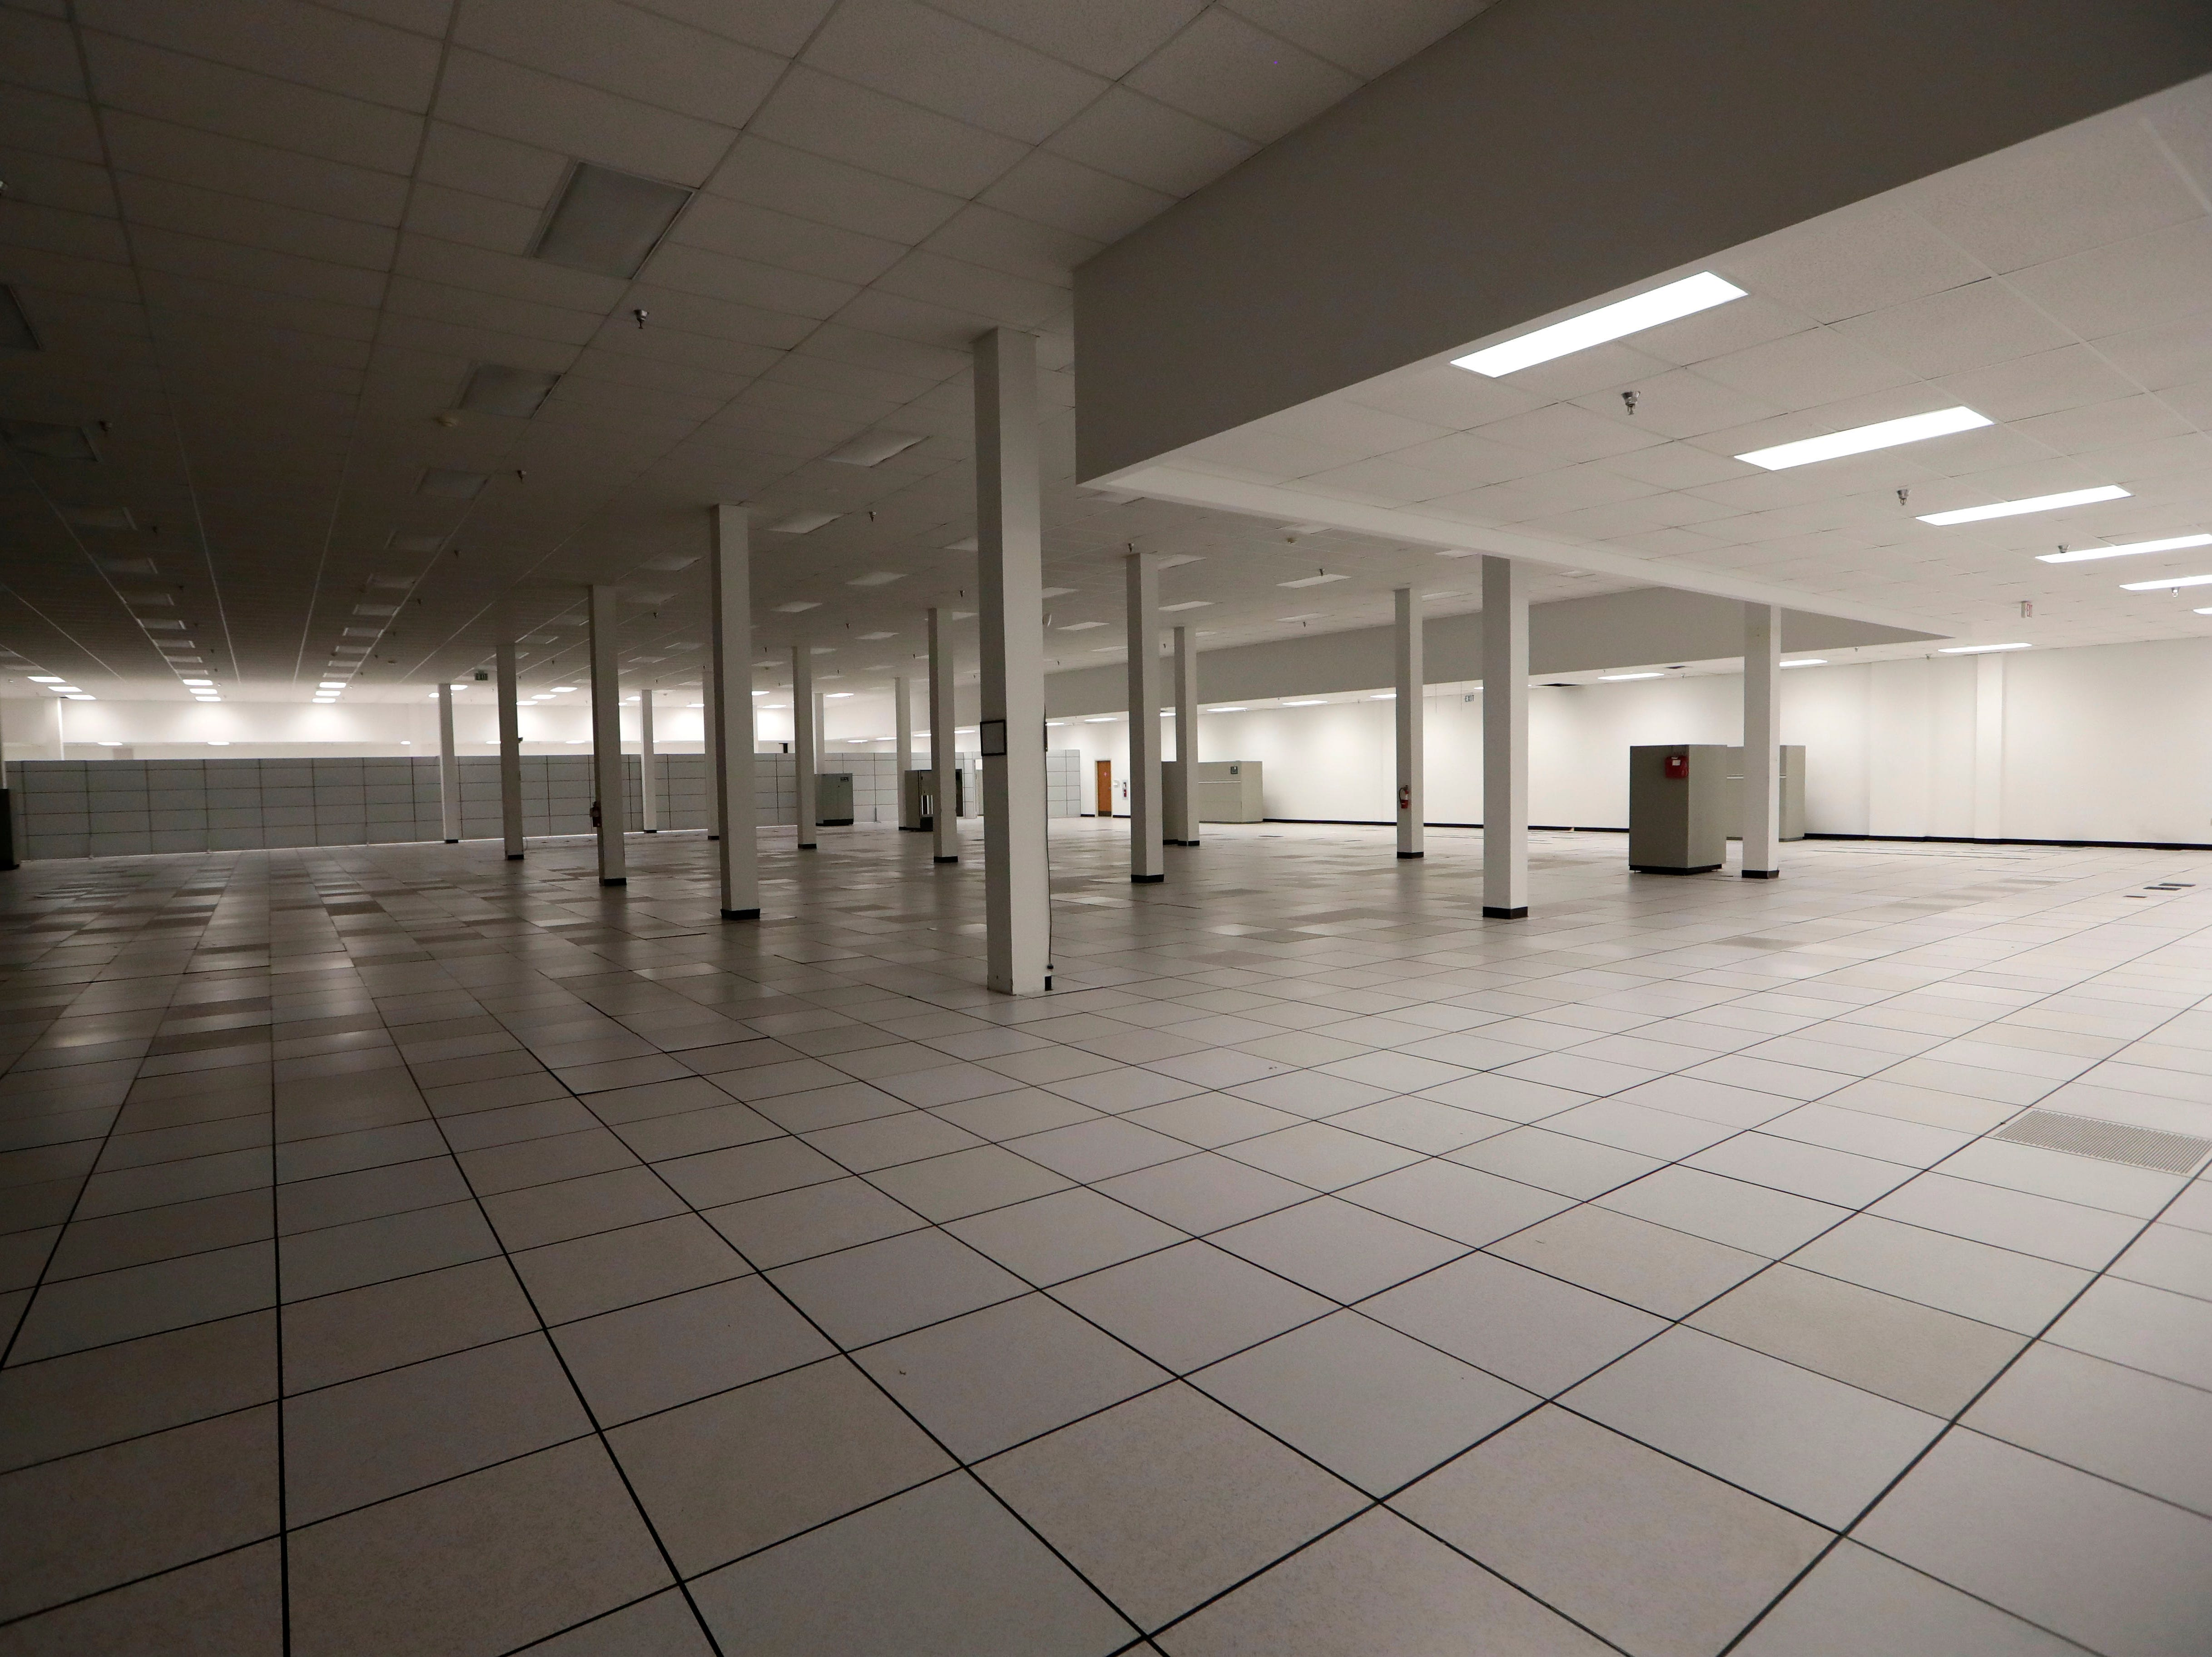 A massive, vacant office space in the Northwood Centre Wednesday, May 8, 2019.